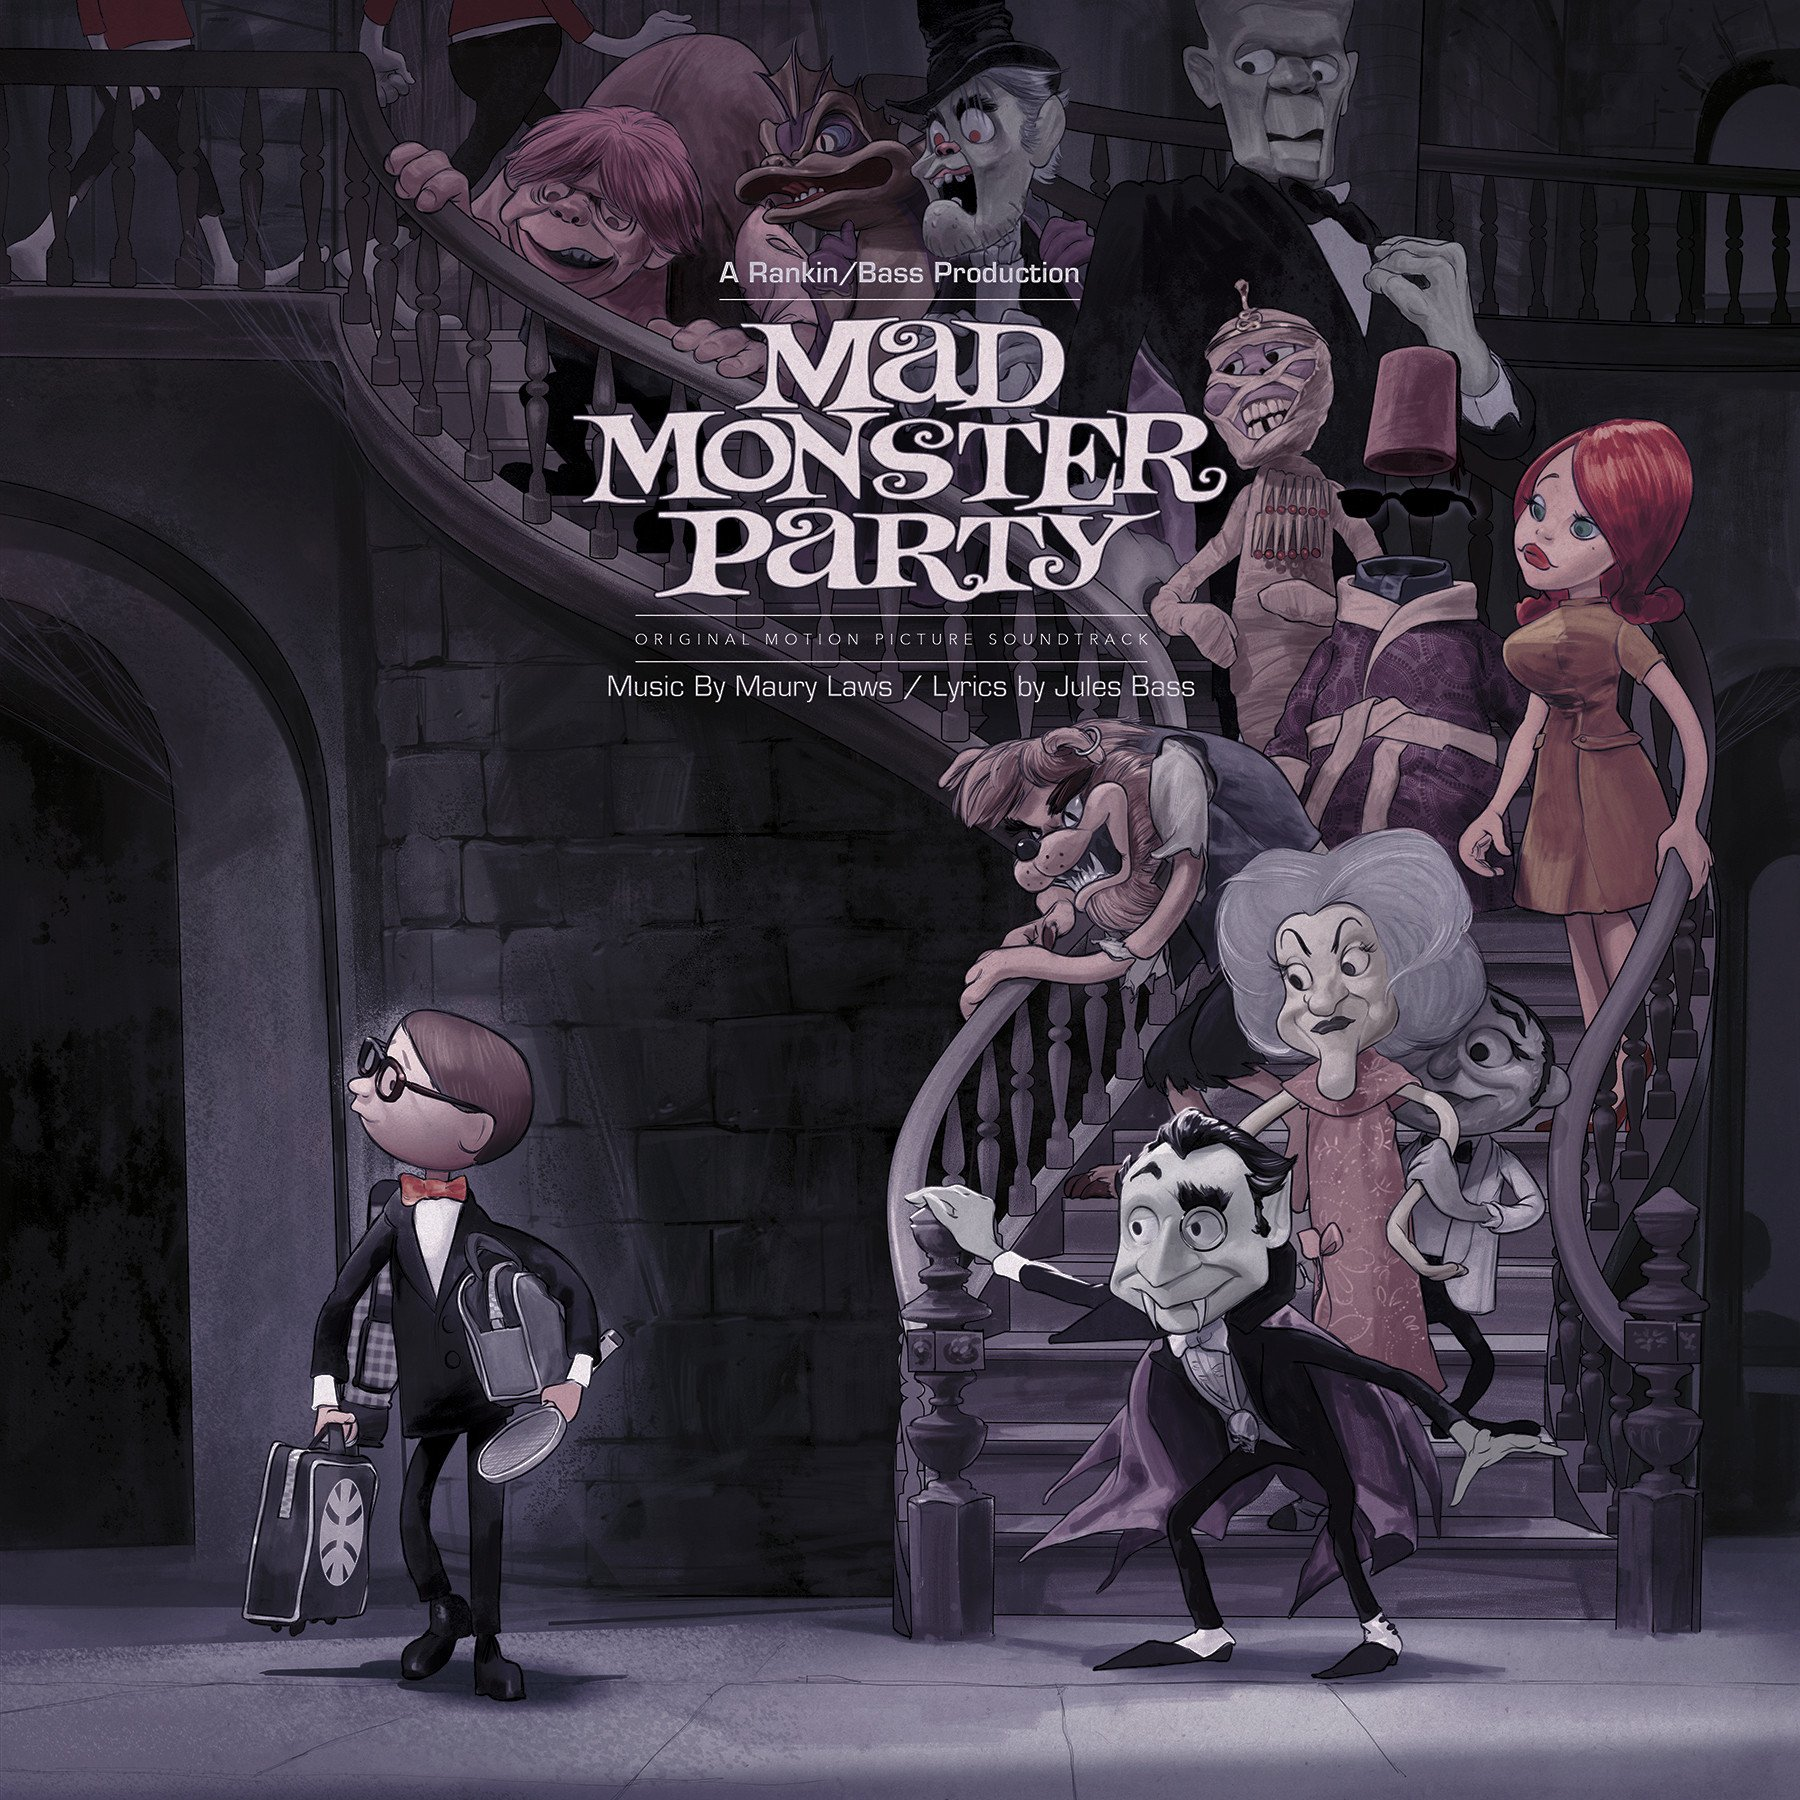 Retro Review Rankin Bass Mad Monster Party